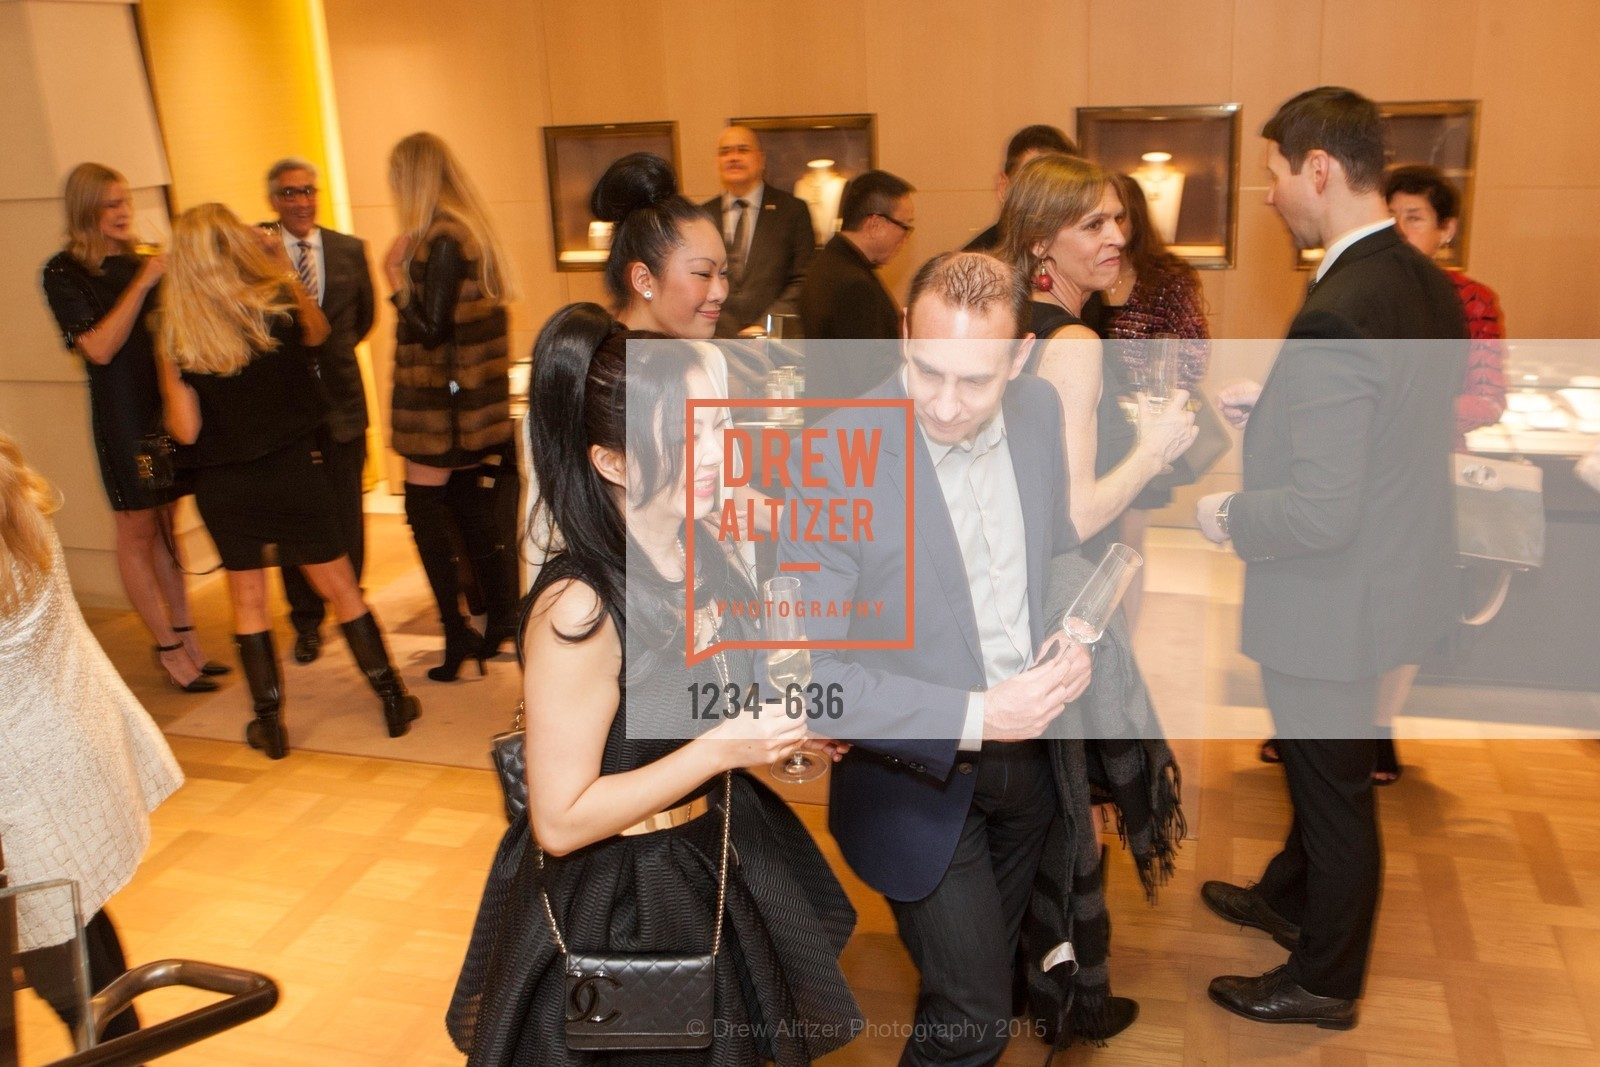 Atmosphere, Bulgari San Francisco Presents WINE, WHISKEY & WATCHES, Bulgari San Francisco. 200 Stockton Street, December 8th, 2015,Drew Altizer, Drew Altizer Photography, full-service event agency, private events, San Francisco photographer, photographer California